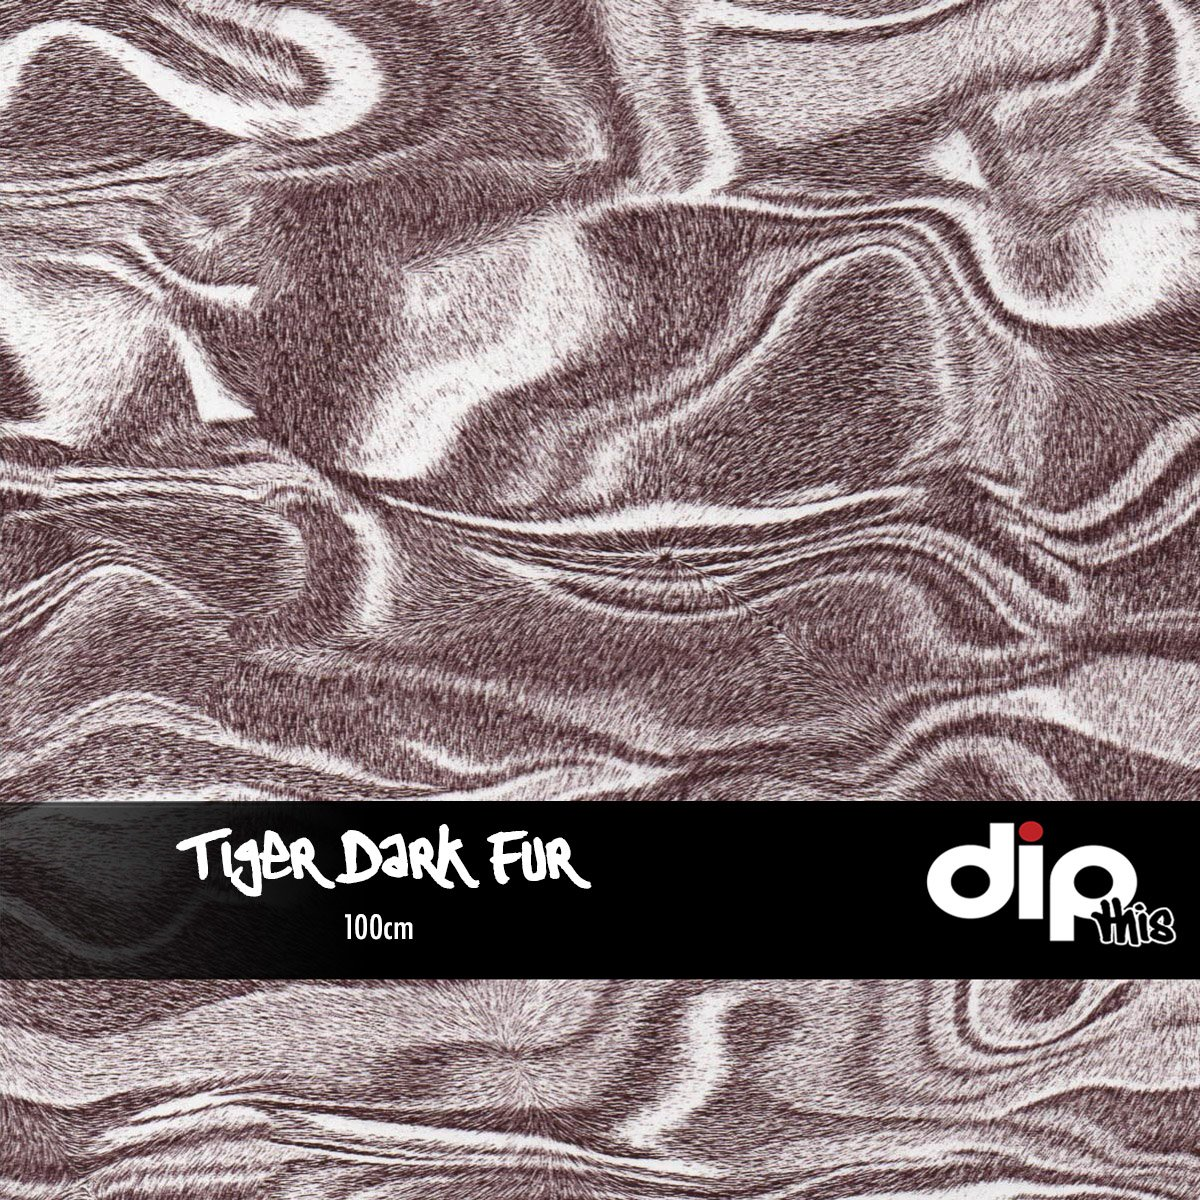 Dark Tiger Fur